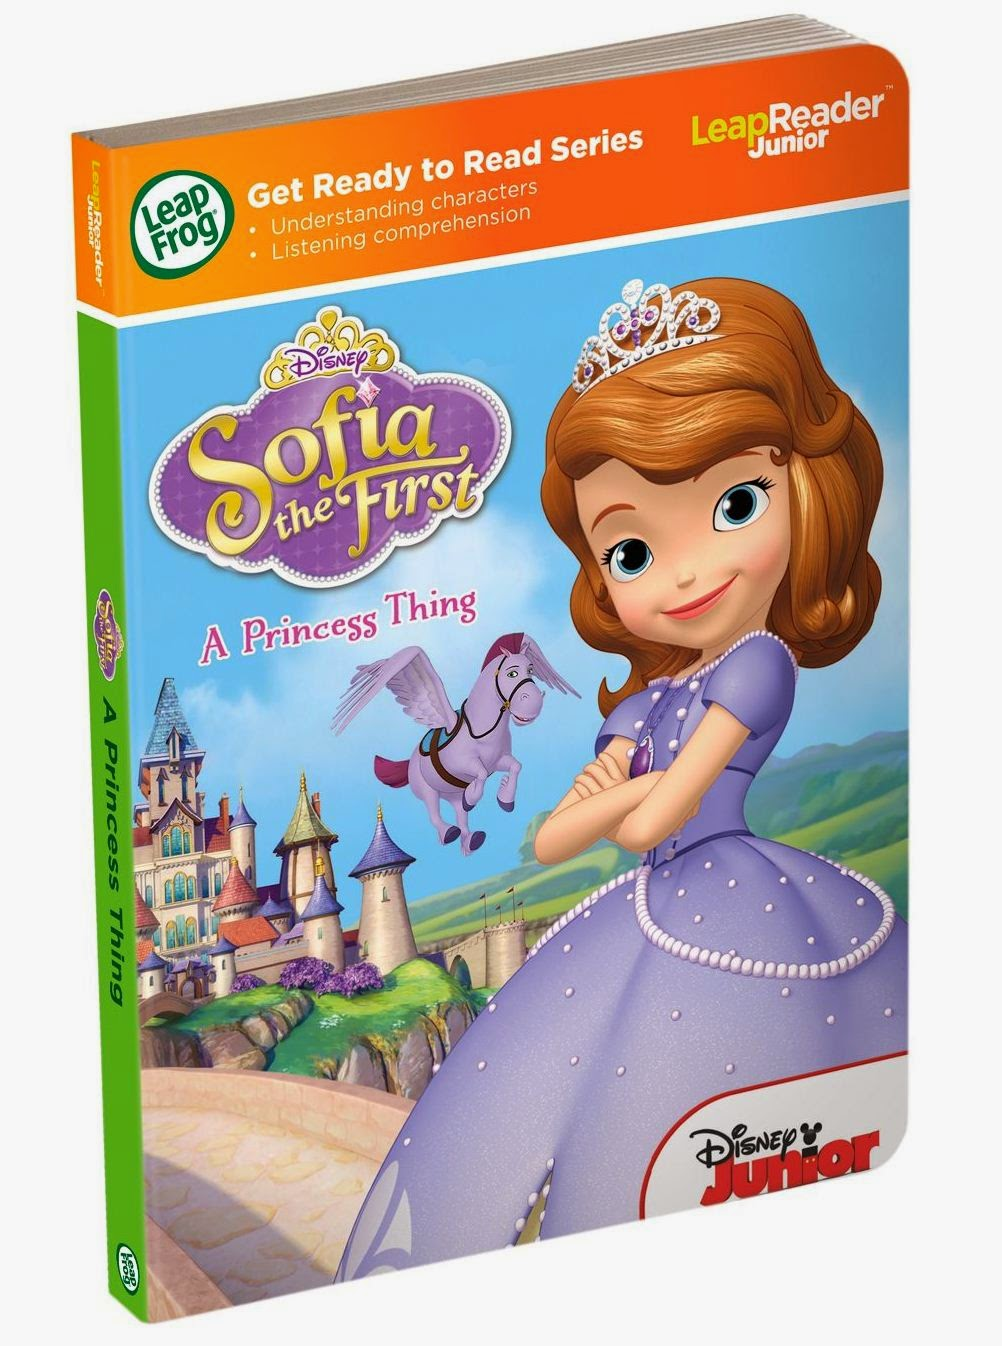 LeapReader Junior Sofia the FIrst book